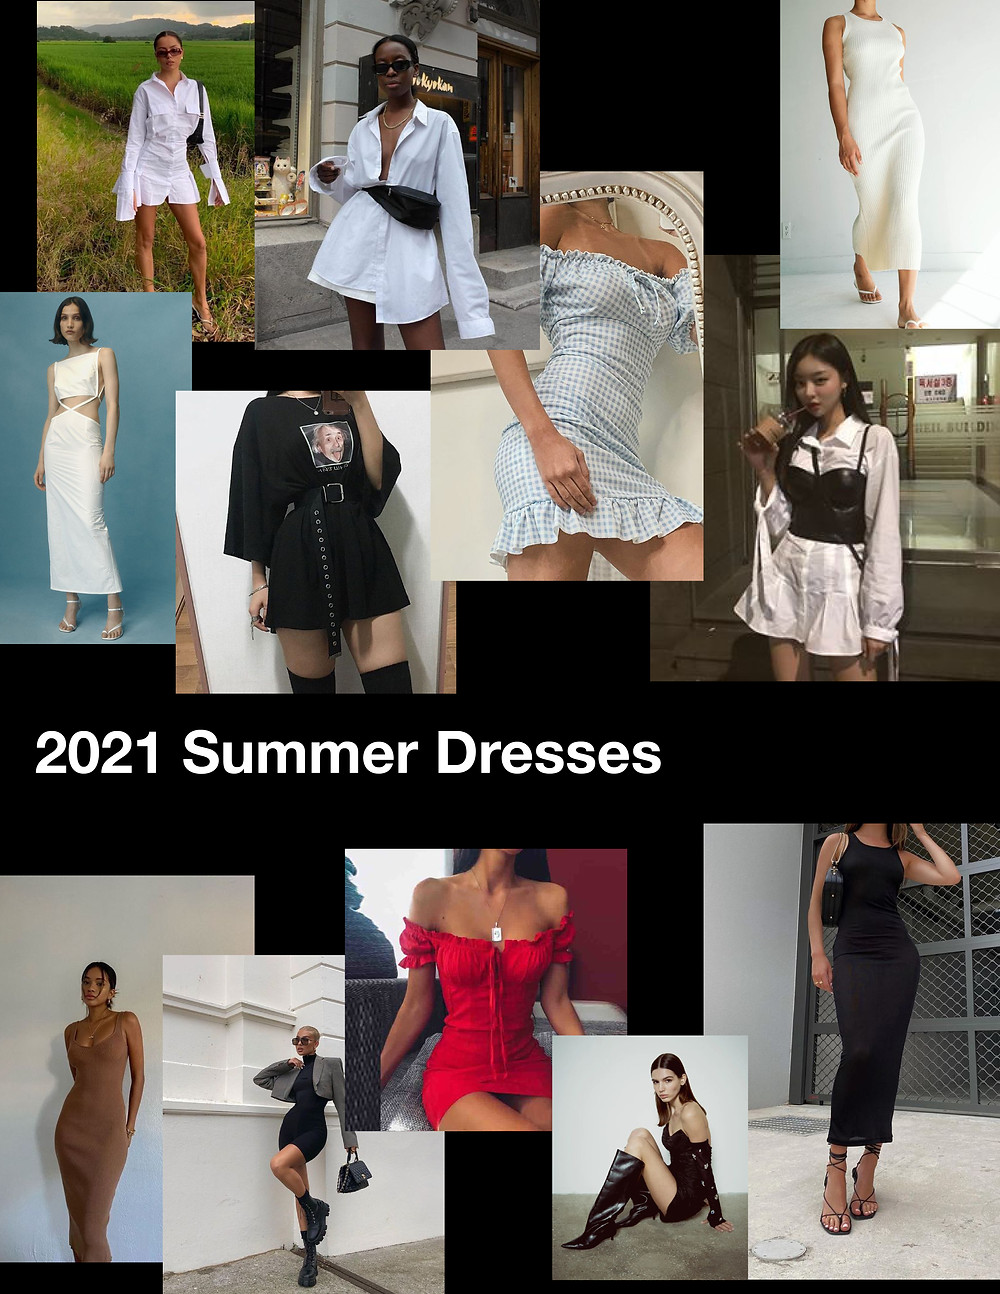 summer dresses 2021, style tips, fashion, shopping, trends